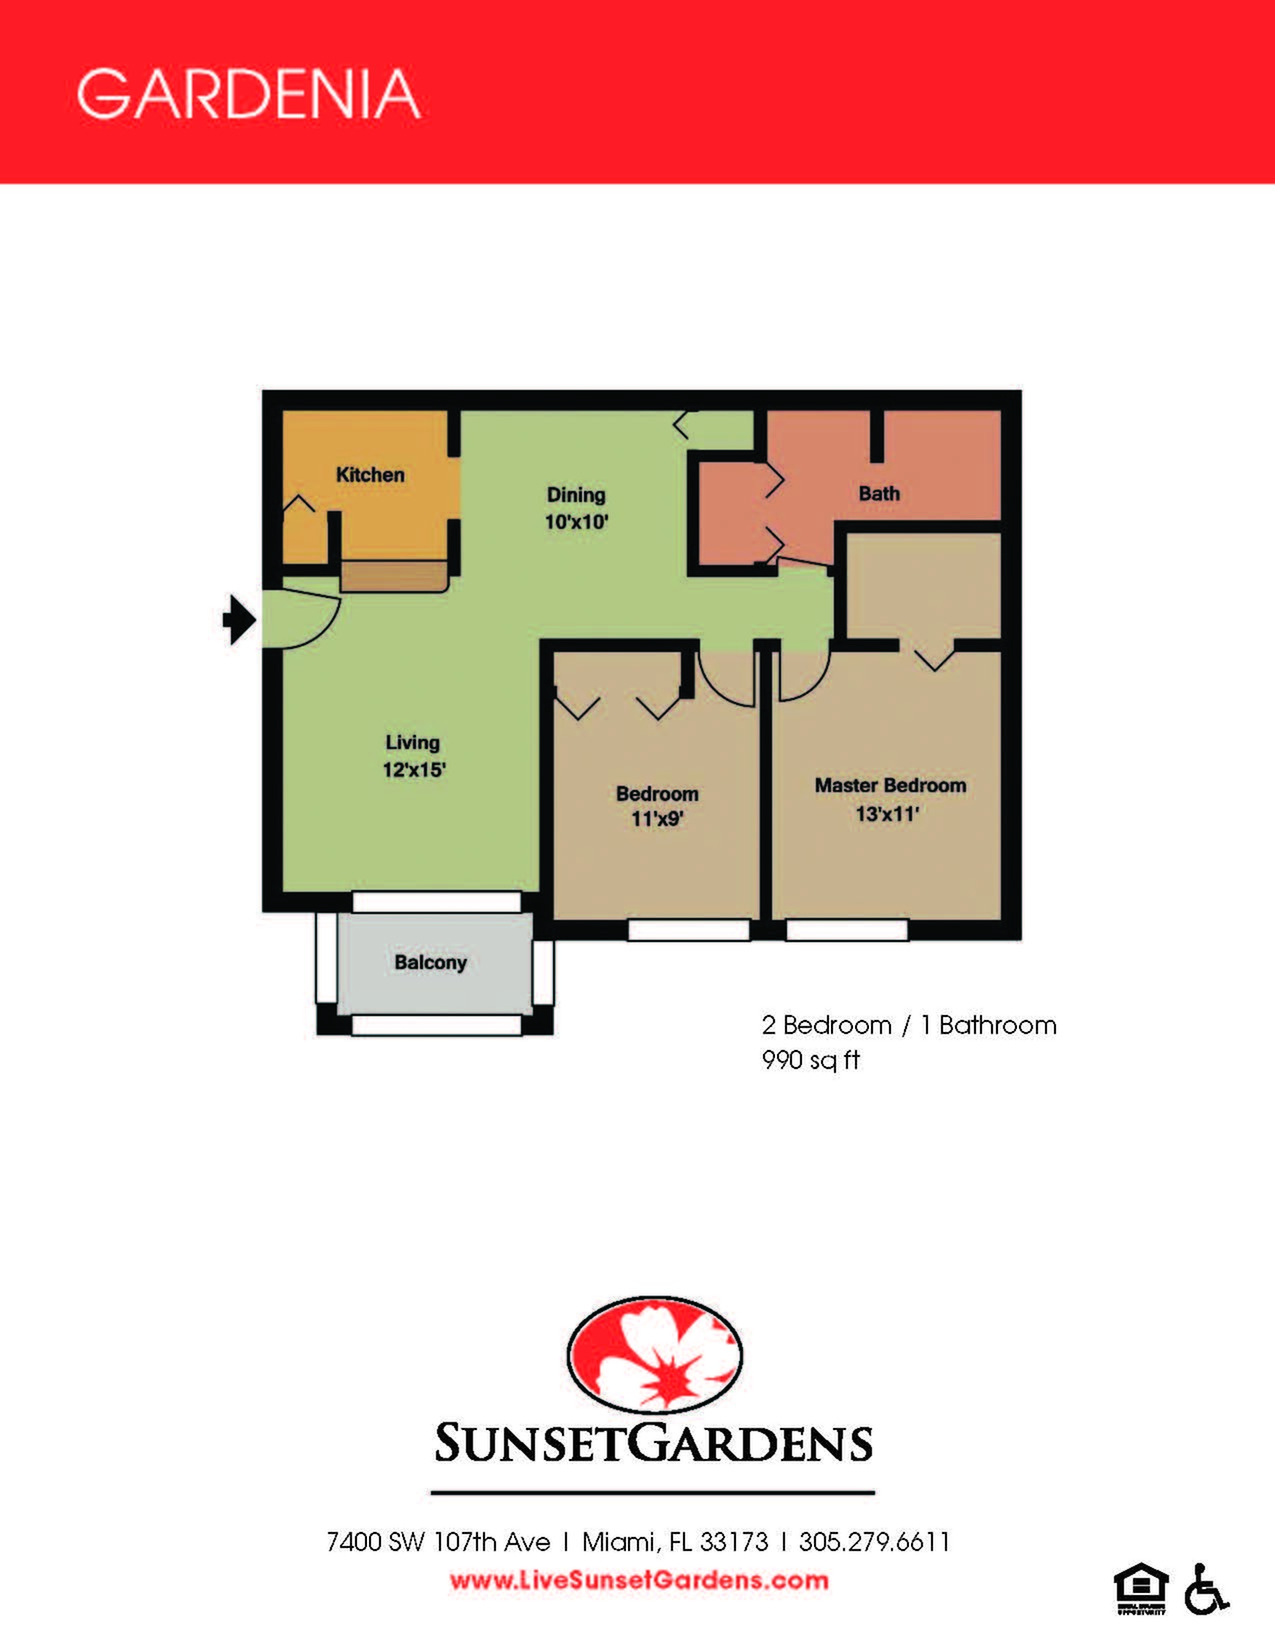 Gardenia two bedroom one bathroom floor plan